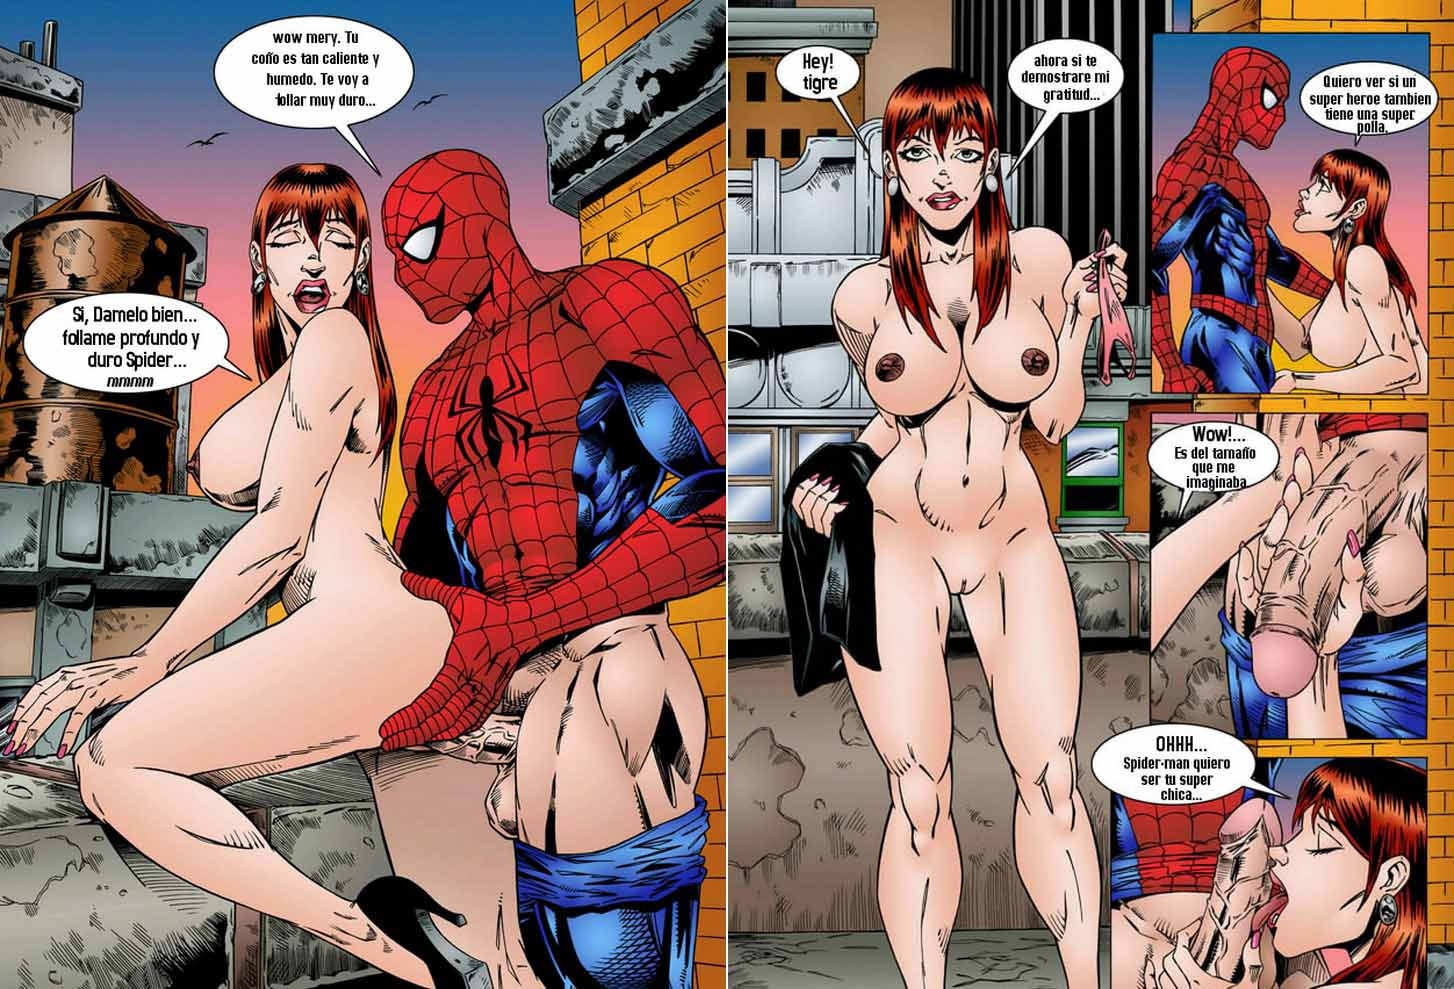 Ultimate Spiderman porno fumetti